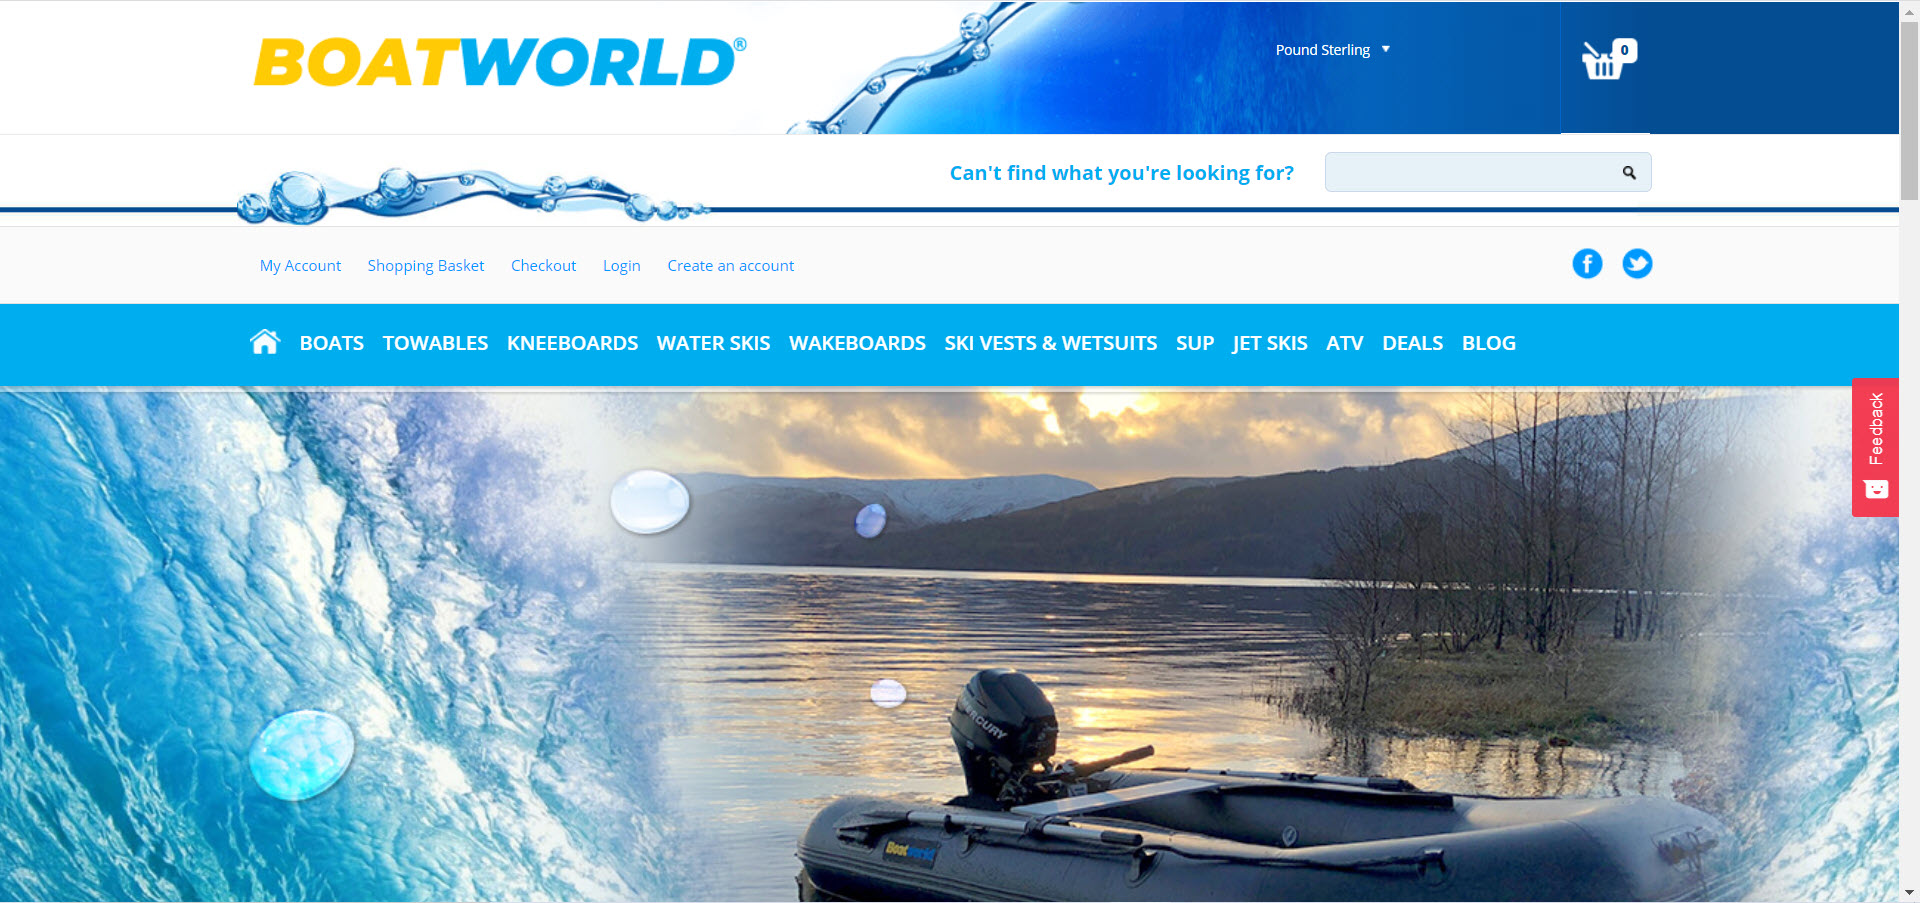 Boat Affiliate Programs - Boat world